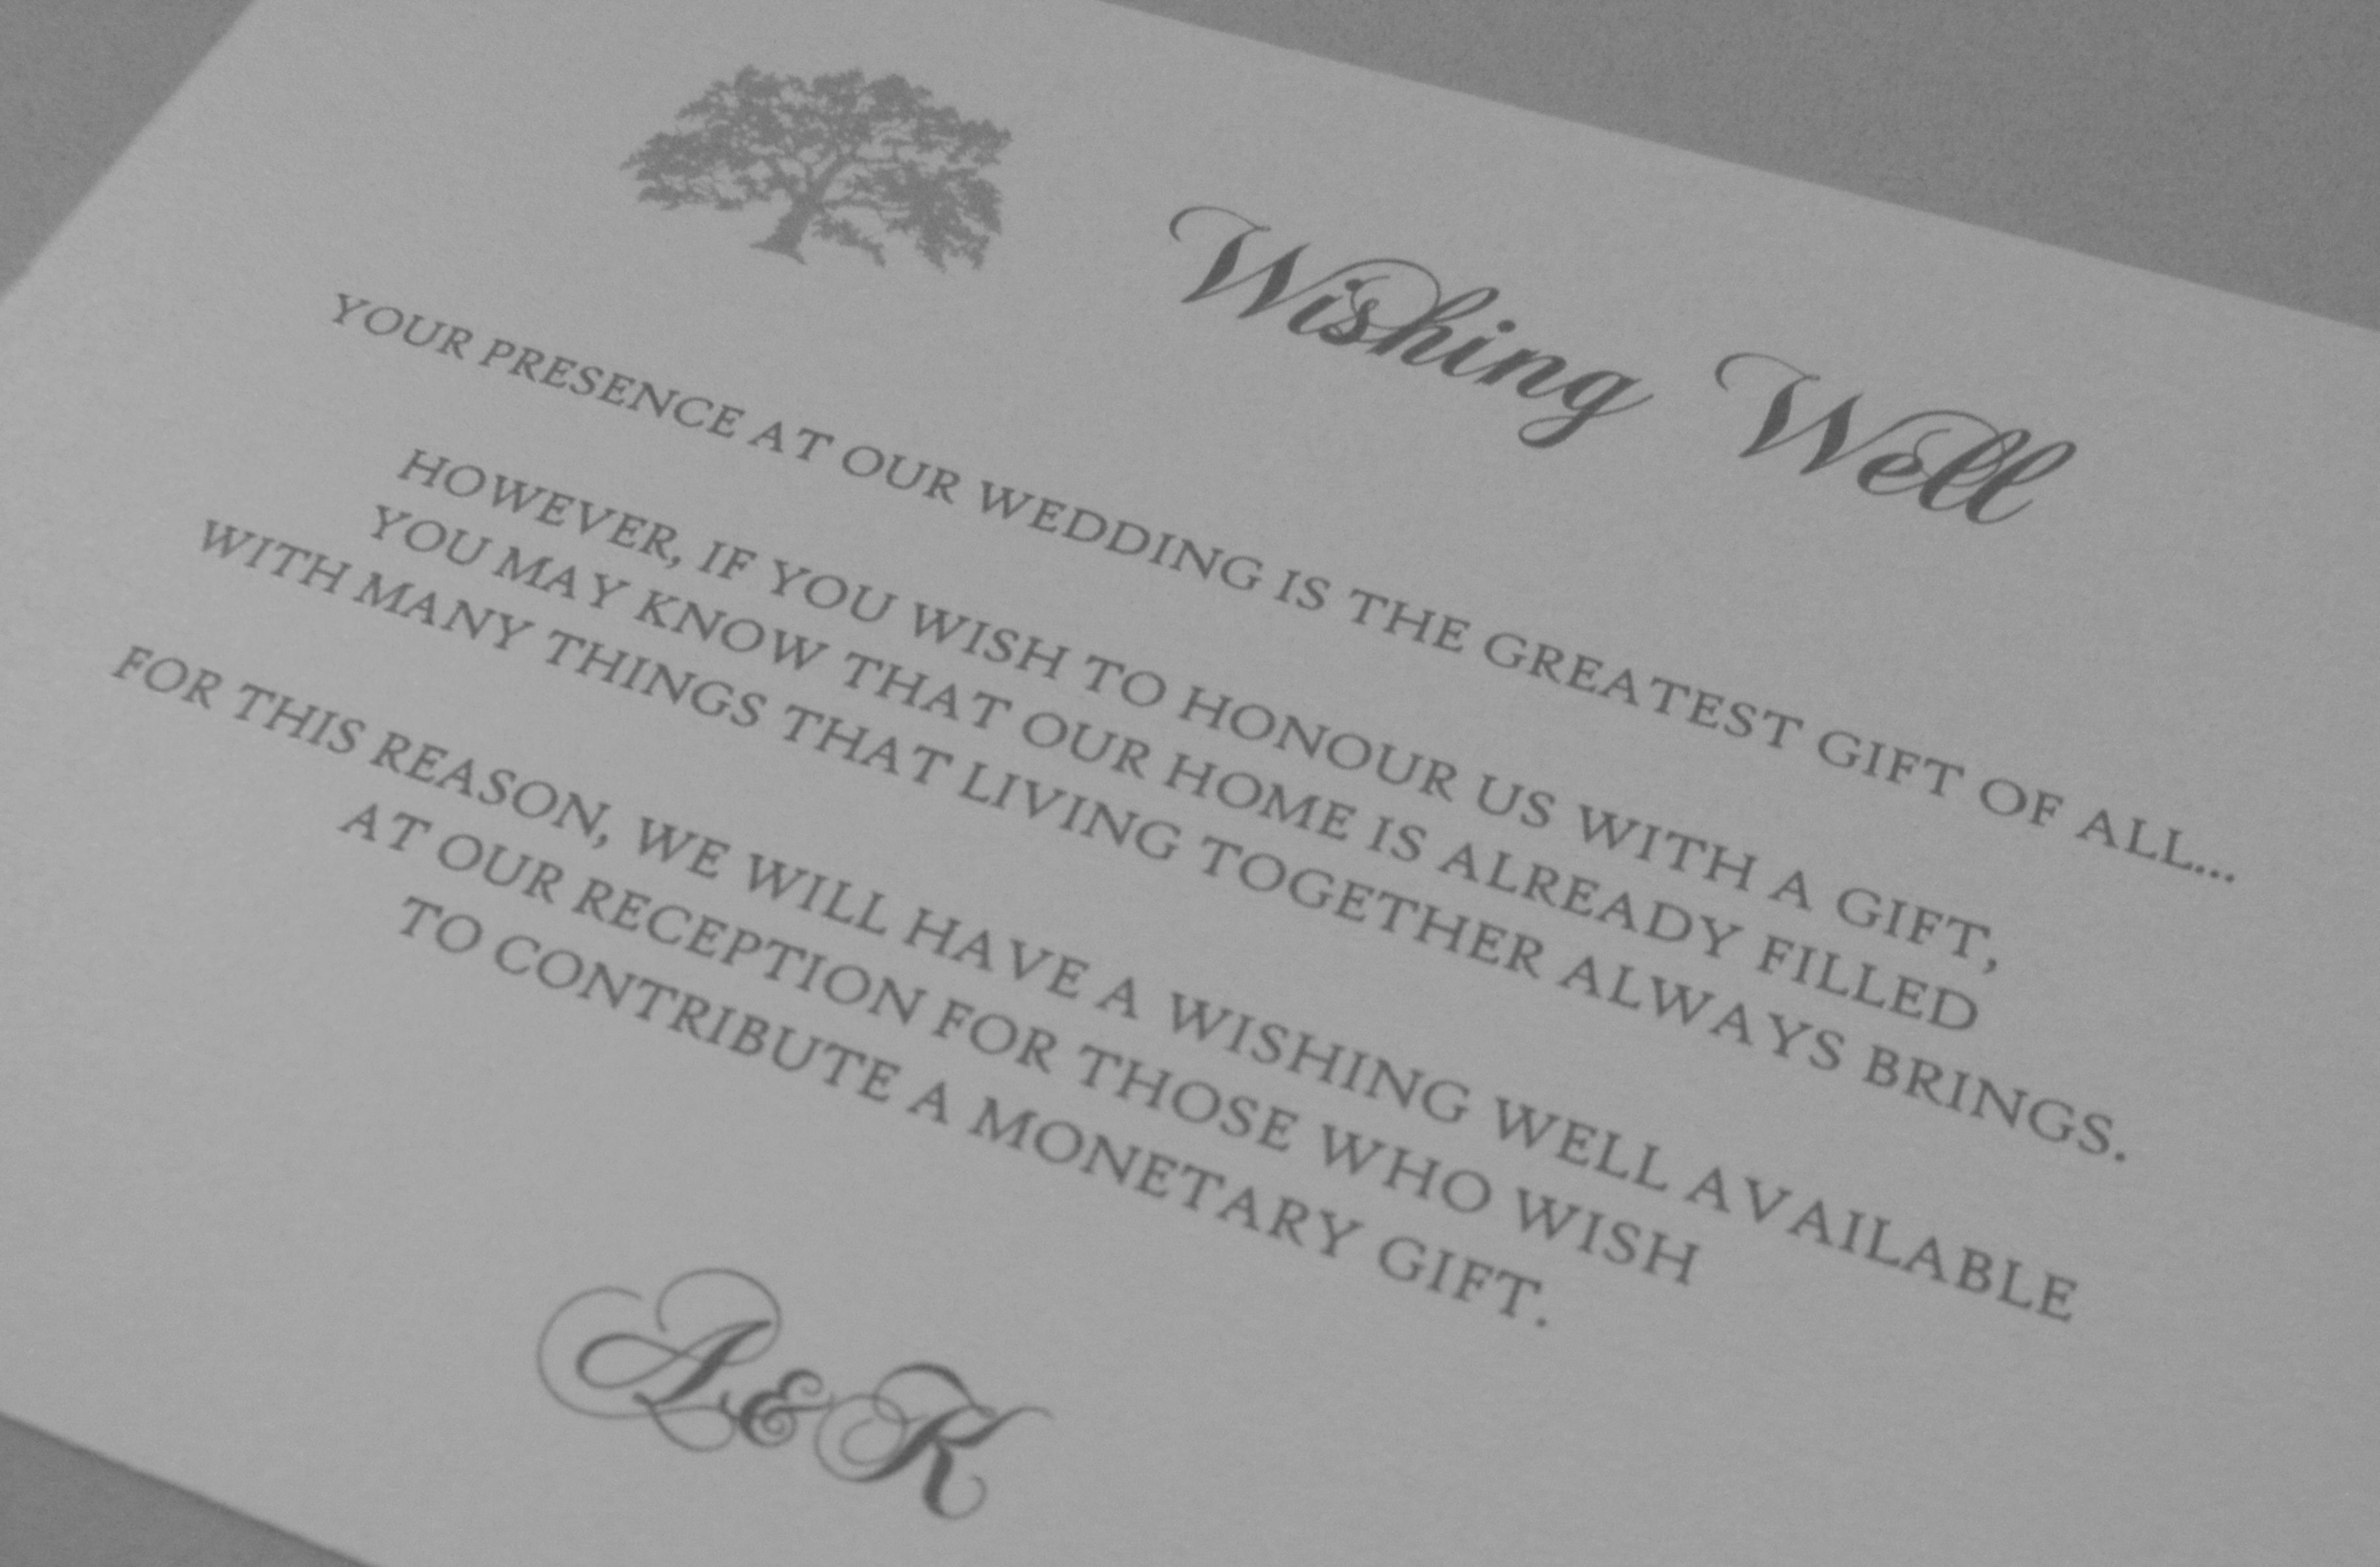 Wedding Gift Cards Wording: Nice Wording For Those Who Are Ok With Requesting Monetary